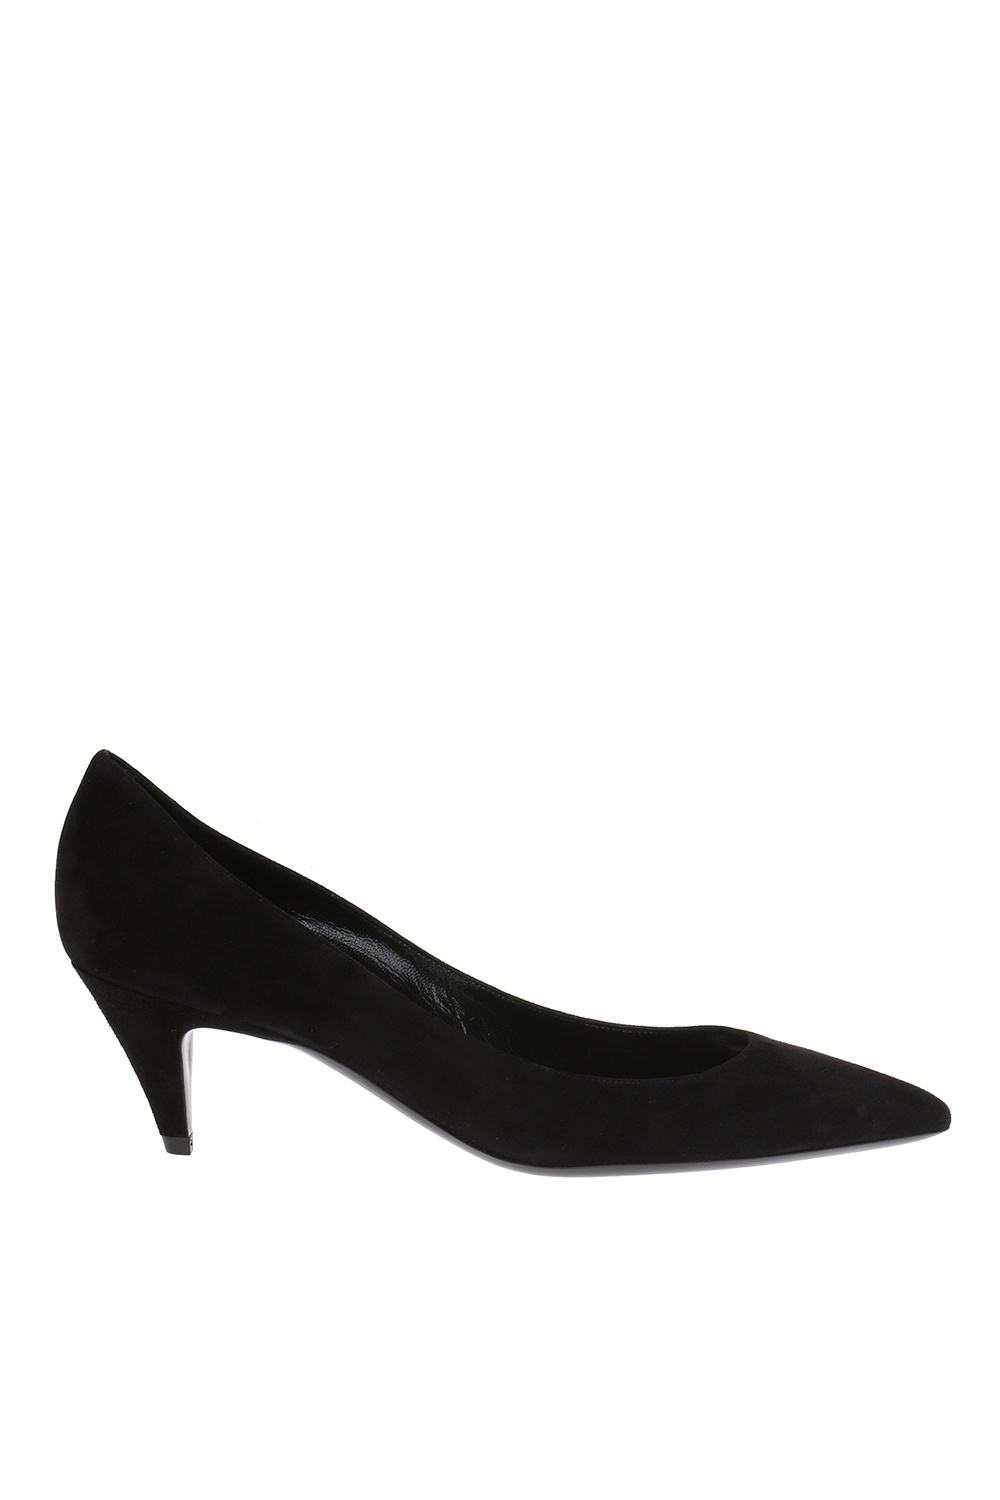 Saint Laurent 'Charlotte' suede pumps